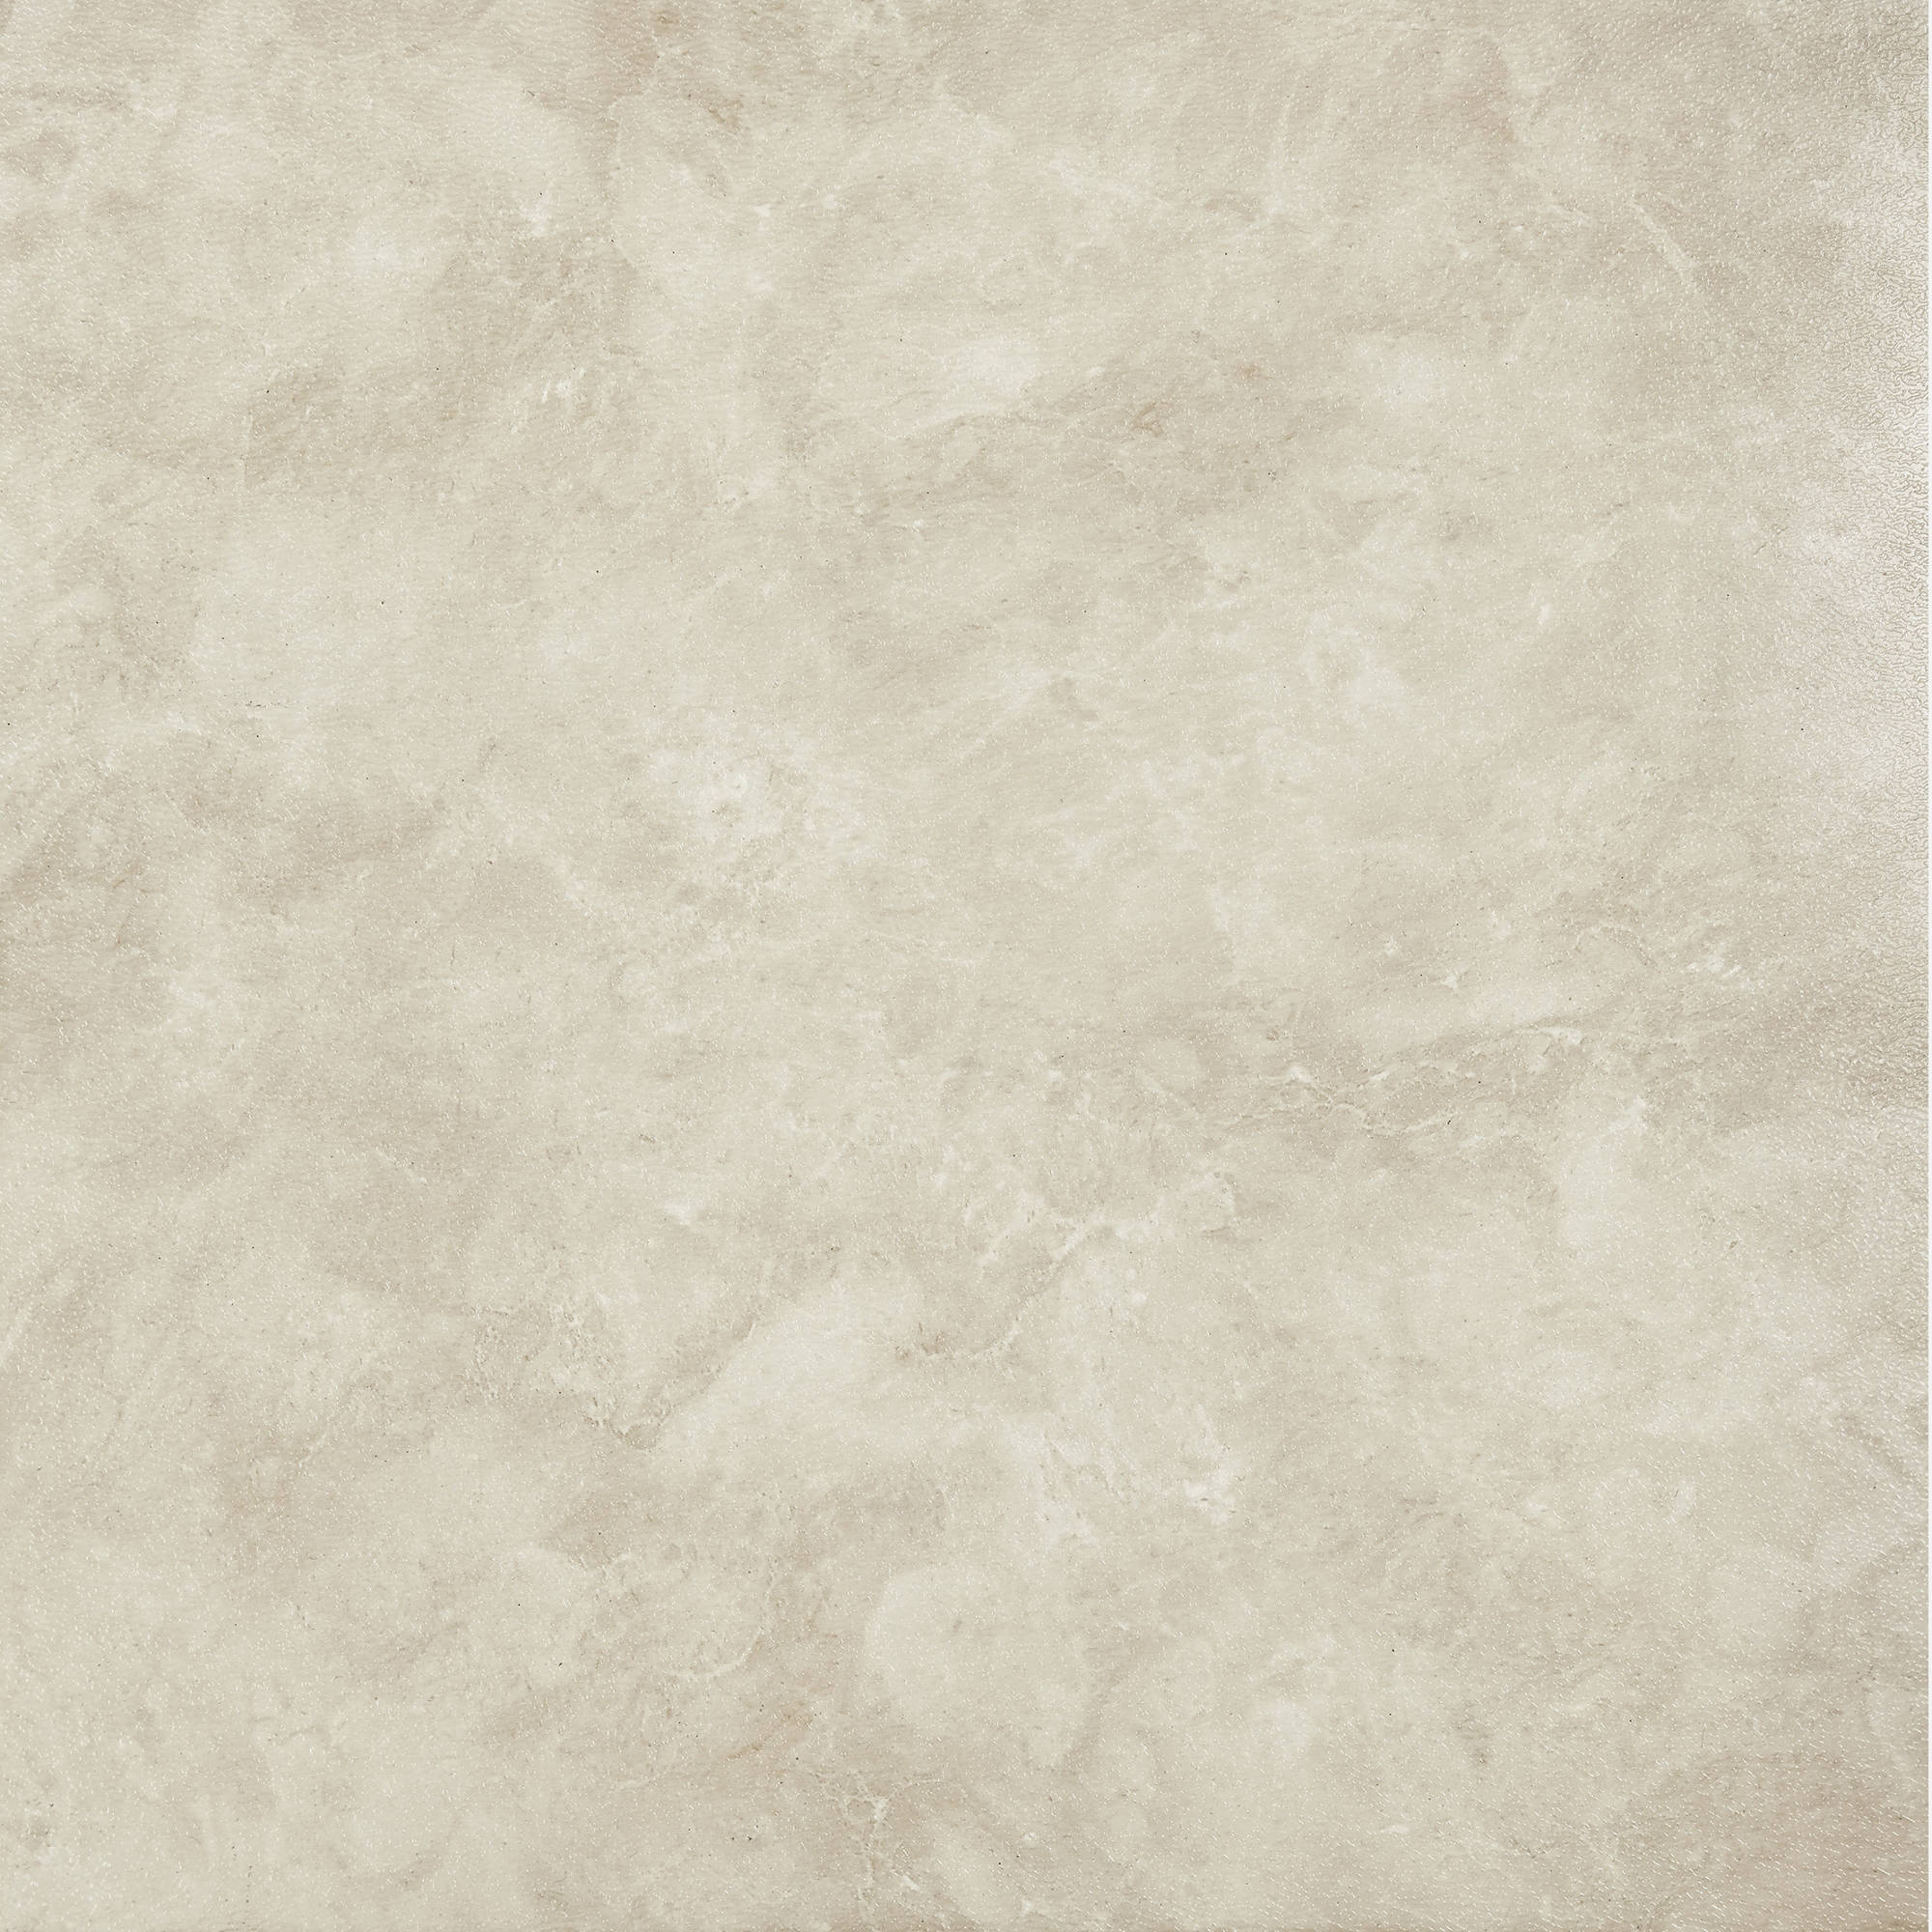 Nexus carrera marble 12 x 12 self adhesive vinyl floor tile 450 nexus carrera marble 12 x 12 self adhesive vinyl floor tile 450 20 tiles walmart doublecrazyfo Choice Image